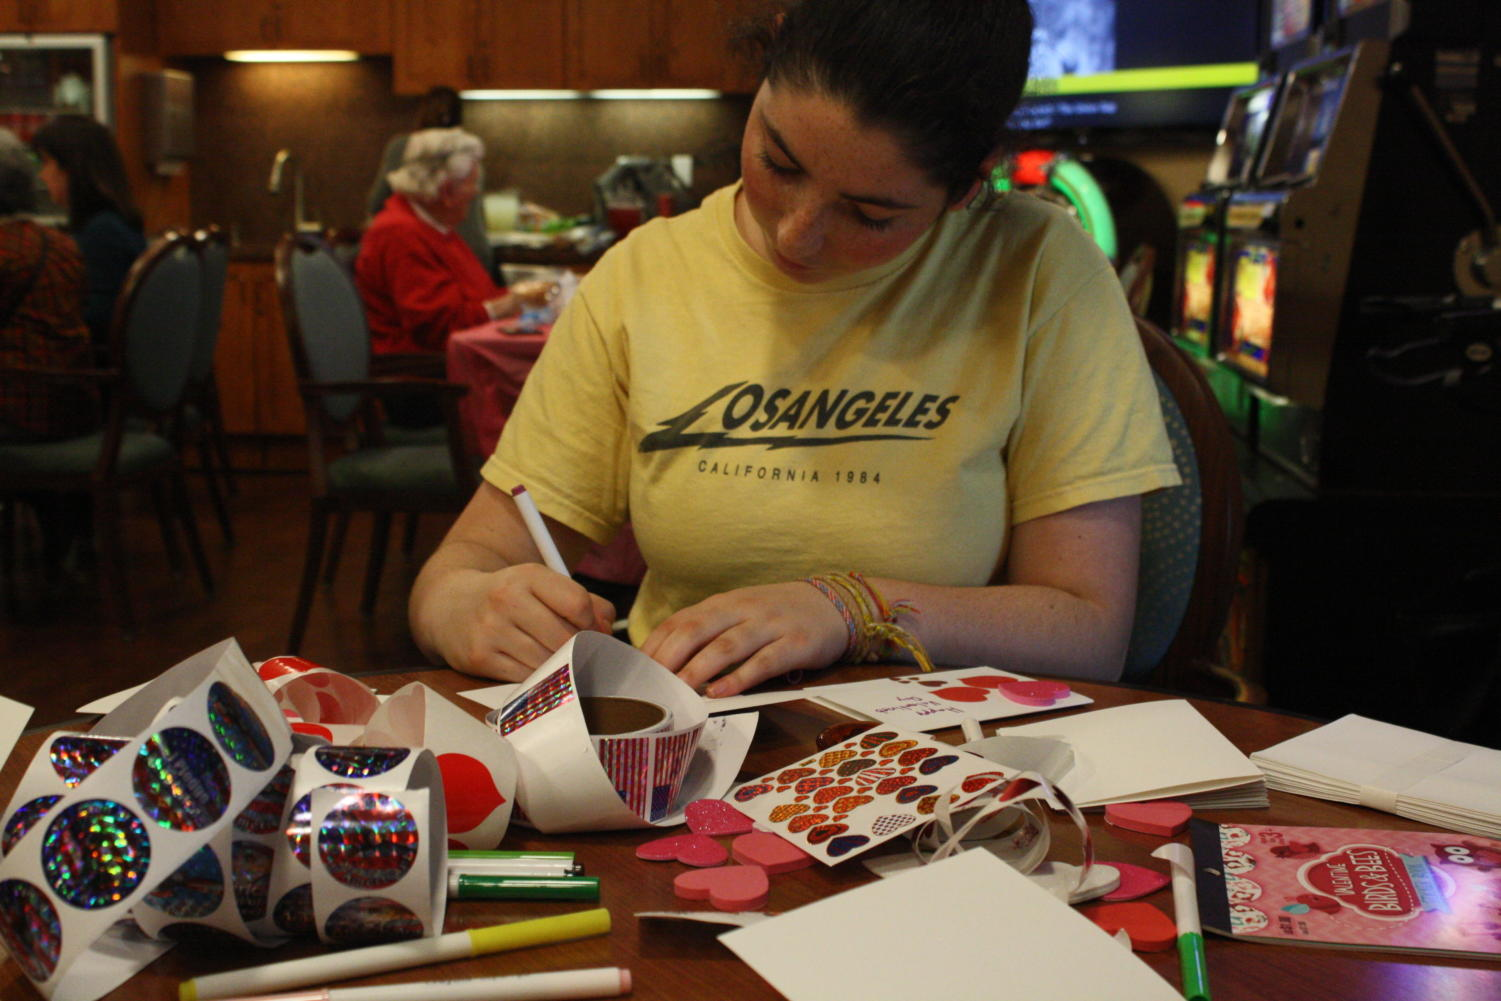 Helena+Cohen%2C+an+eighth+grader%2C+makes+cards+for+the+veterans.+